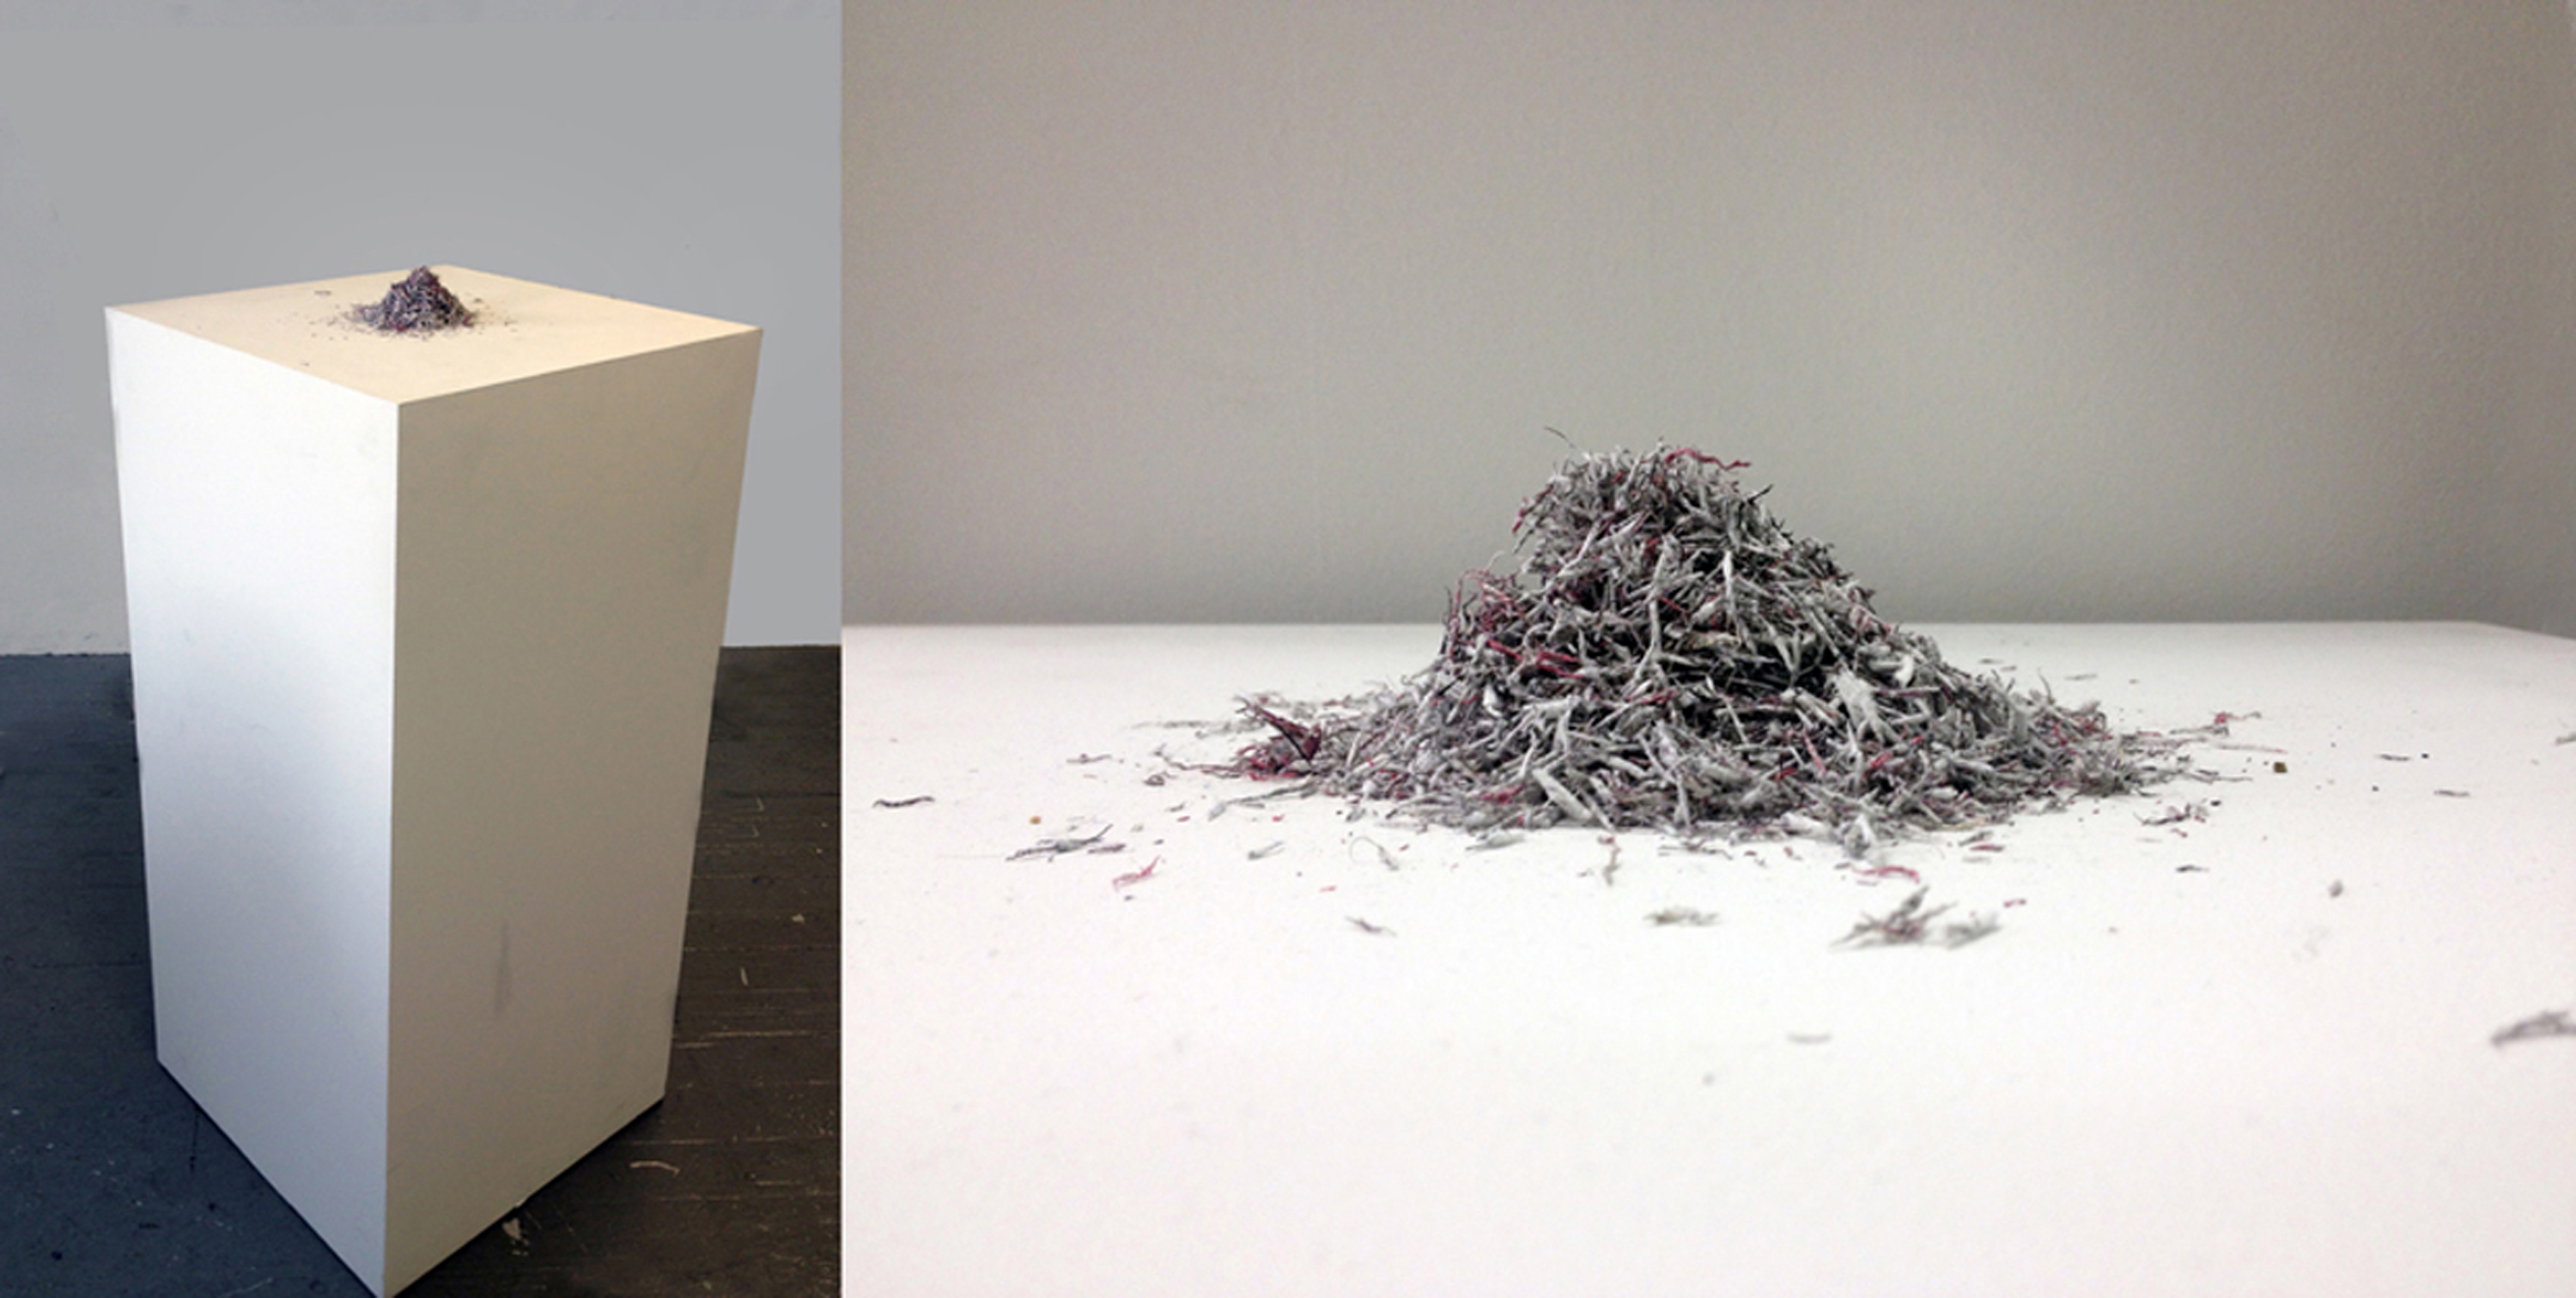 Bethany Collins, Colorblind Dictionary, 2013-2014, found book with color terms erased, 10 x 6 inches